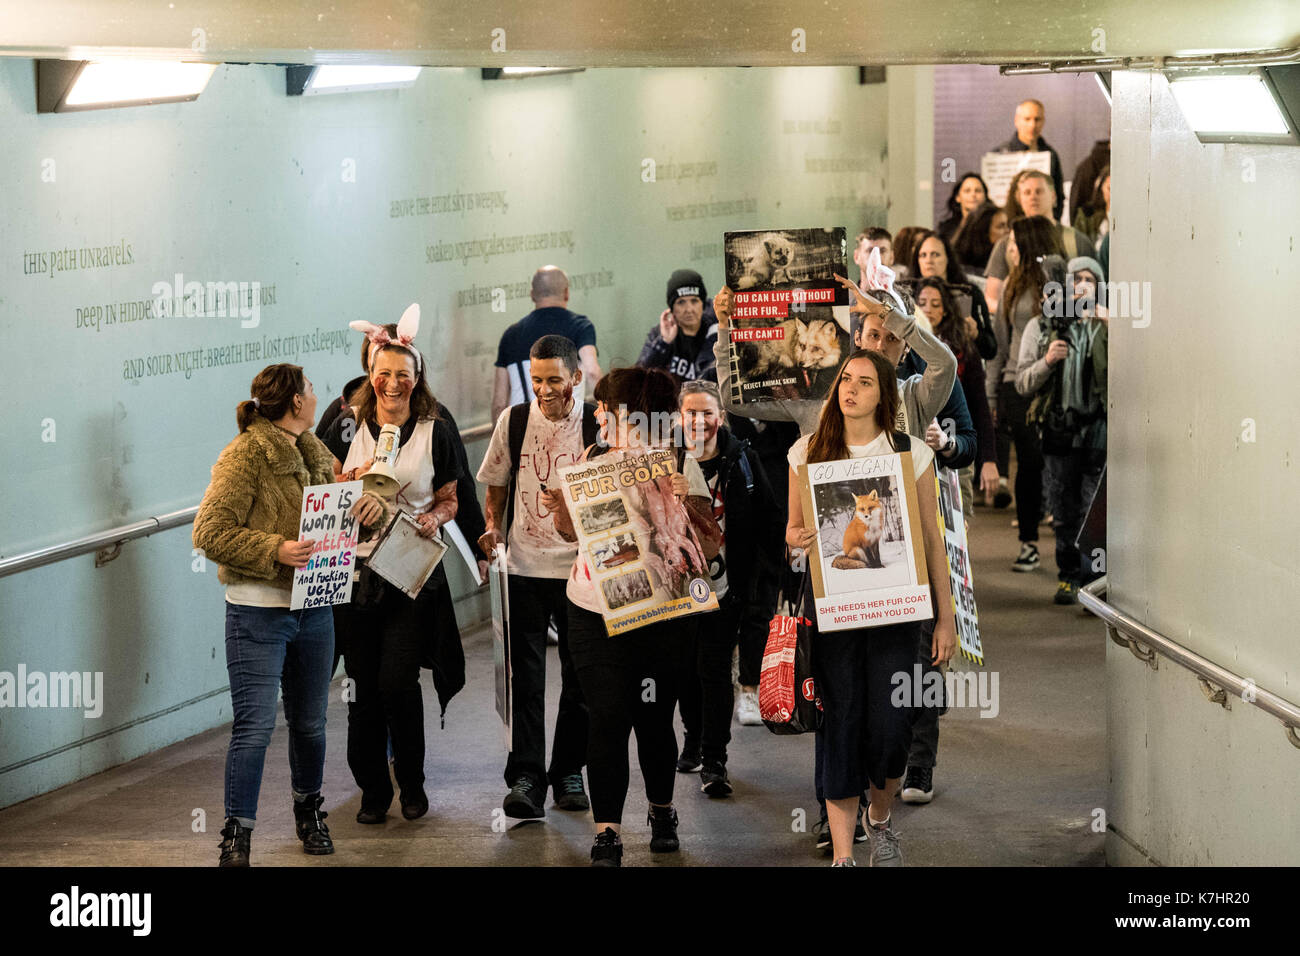 London 16th September 2017, Anti fur protesters picket the Gareth Pugh LFW17 presentation at the BFI IMAZ protesters left the event and went to Waterloo station to picket another event Credit: Ian Davidson/Alamy Live News - Stock Image